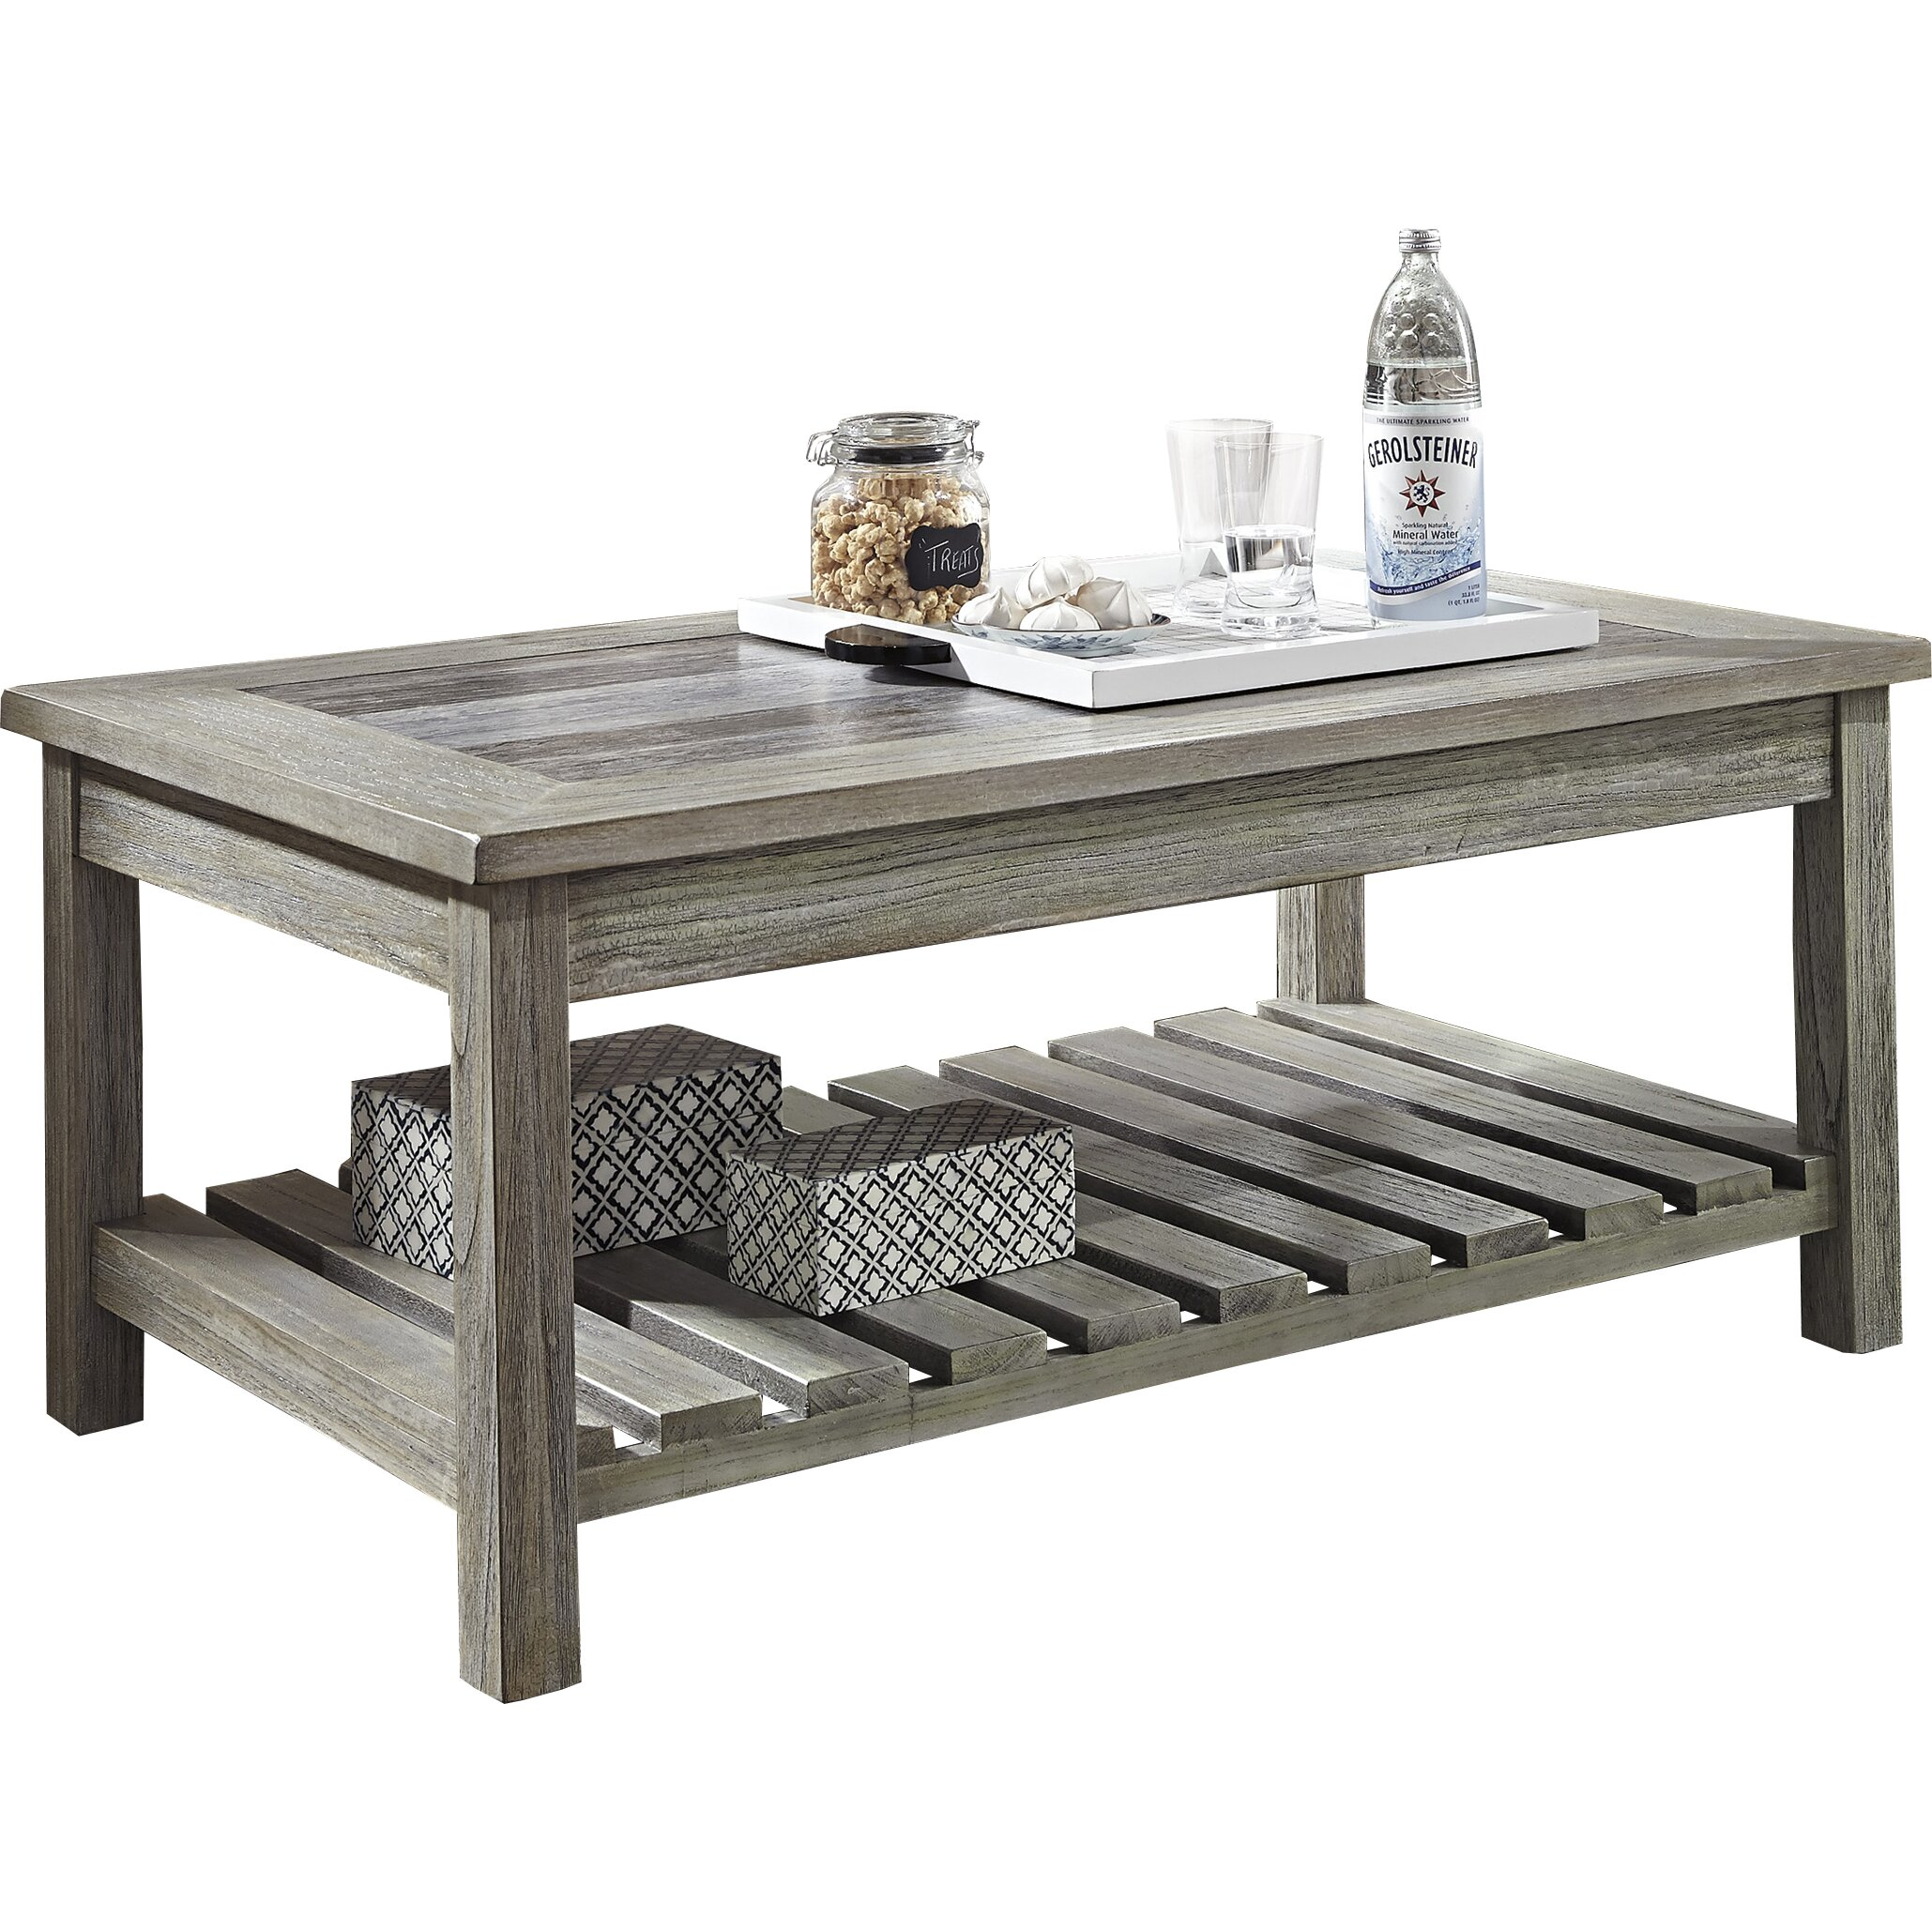 Beachcrest Home Briarwood Coffee Table with Magazine Rack & Reviews | Wayfair.ca